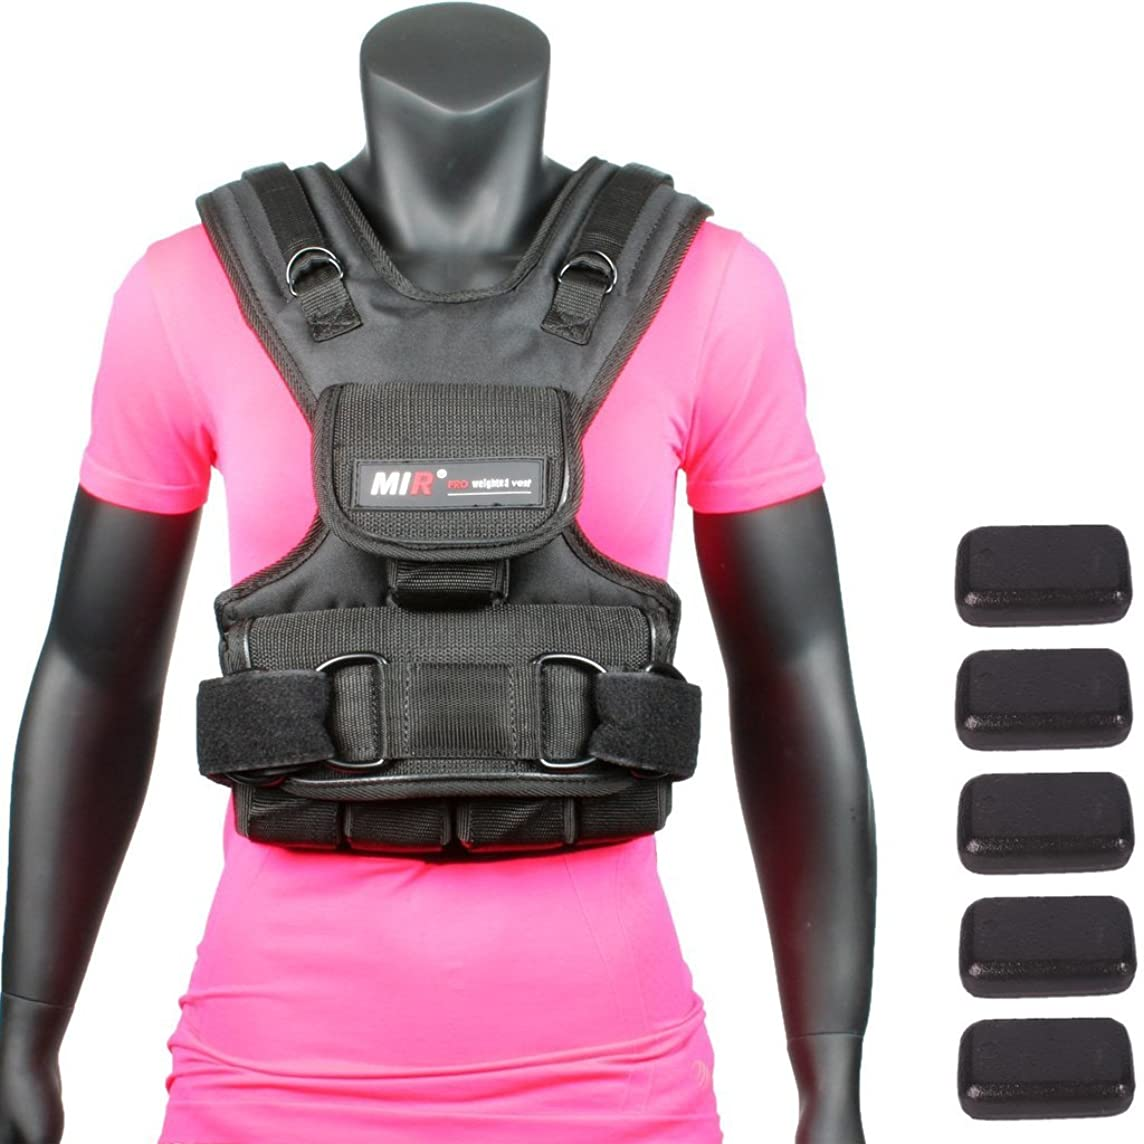 Mir Womens Adjustable Weighted Vest (10lbs - 50lbs)